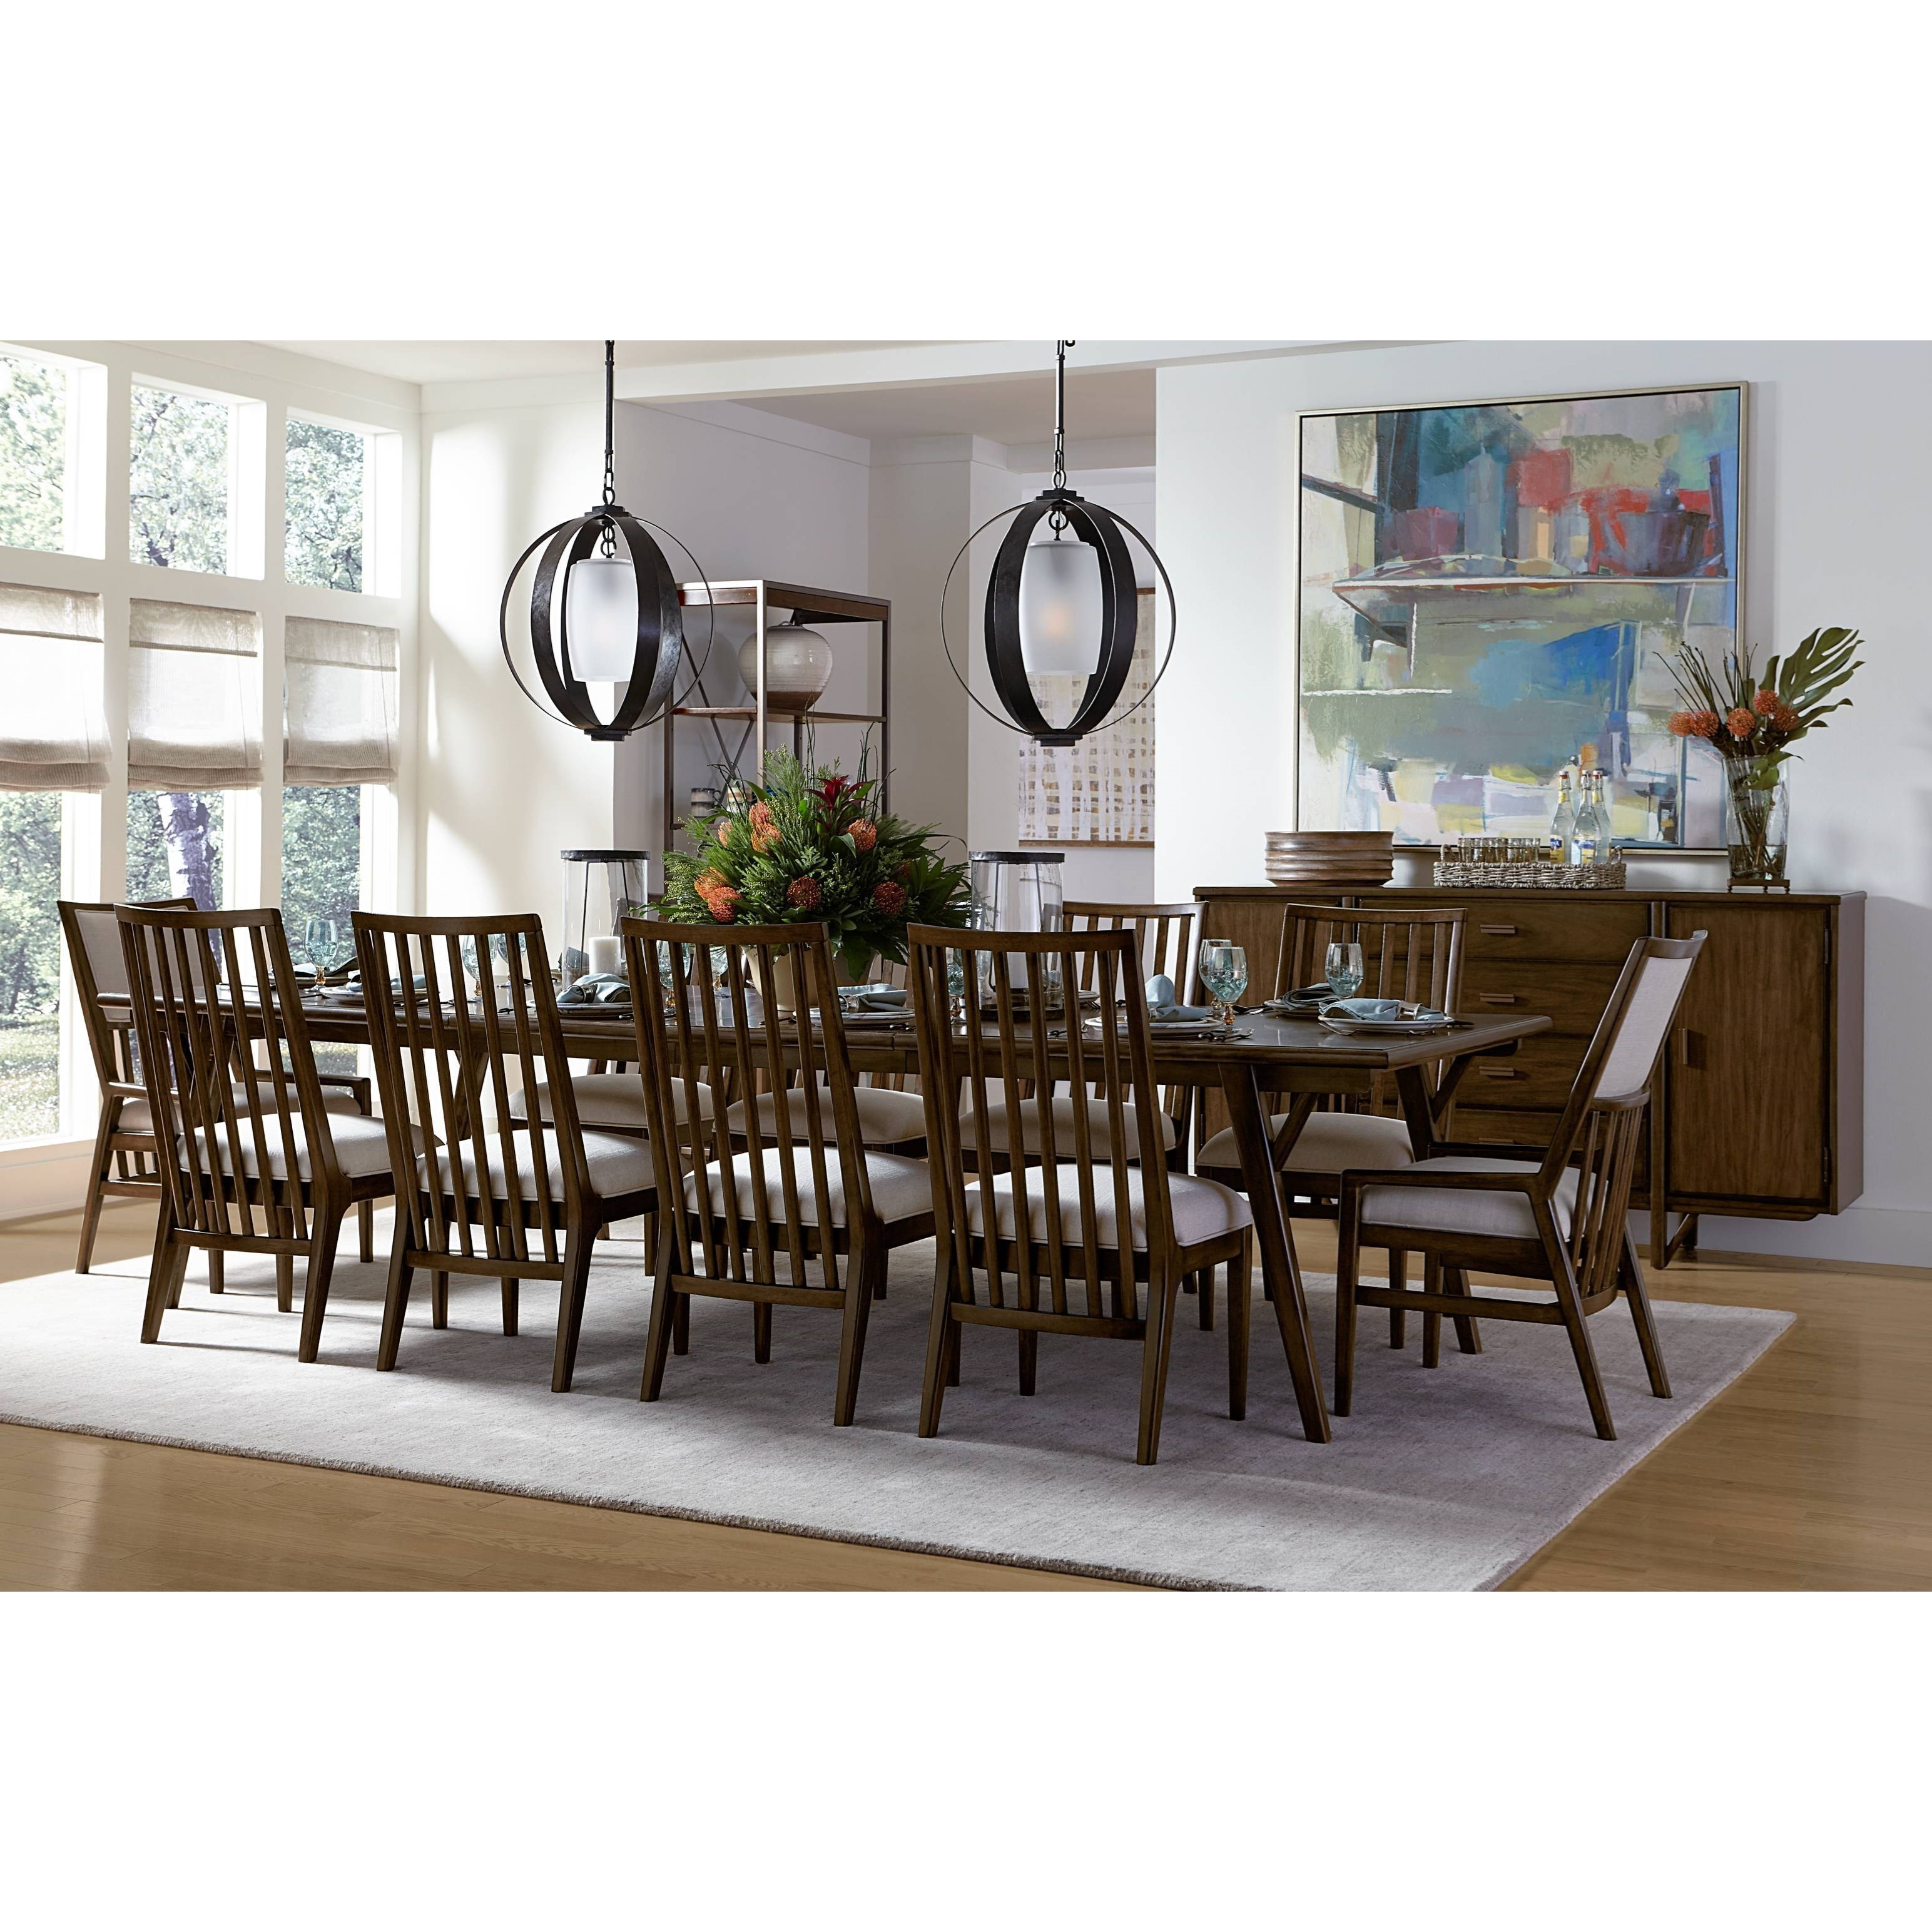 Delightful Stanley Furniture Santa Clara Formal Dining Room Group